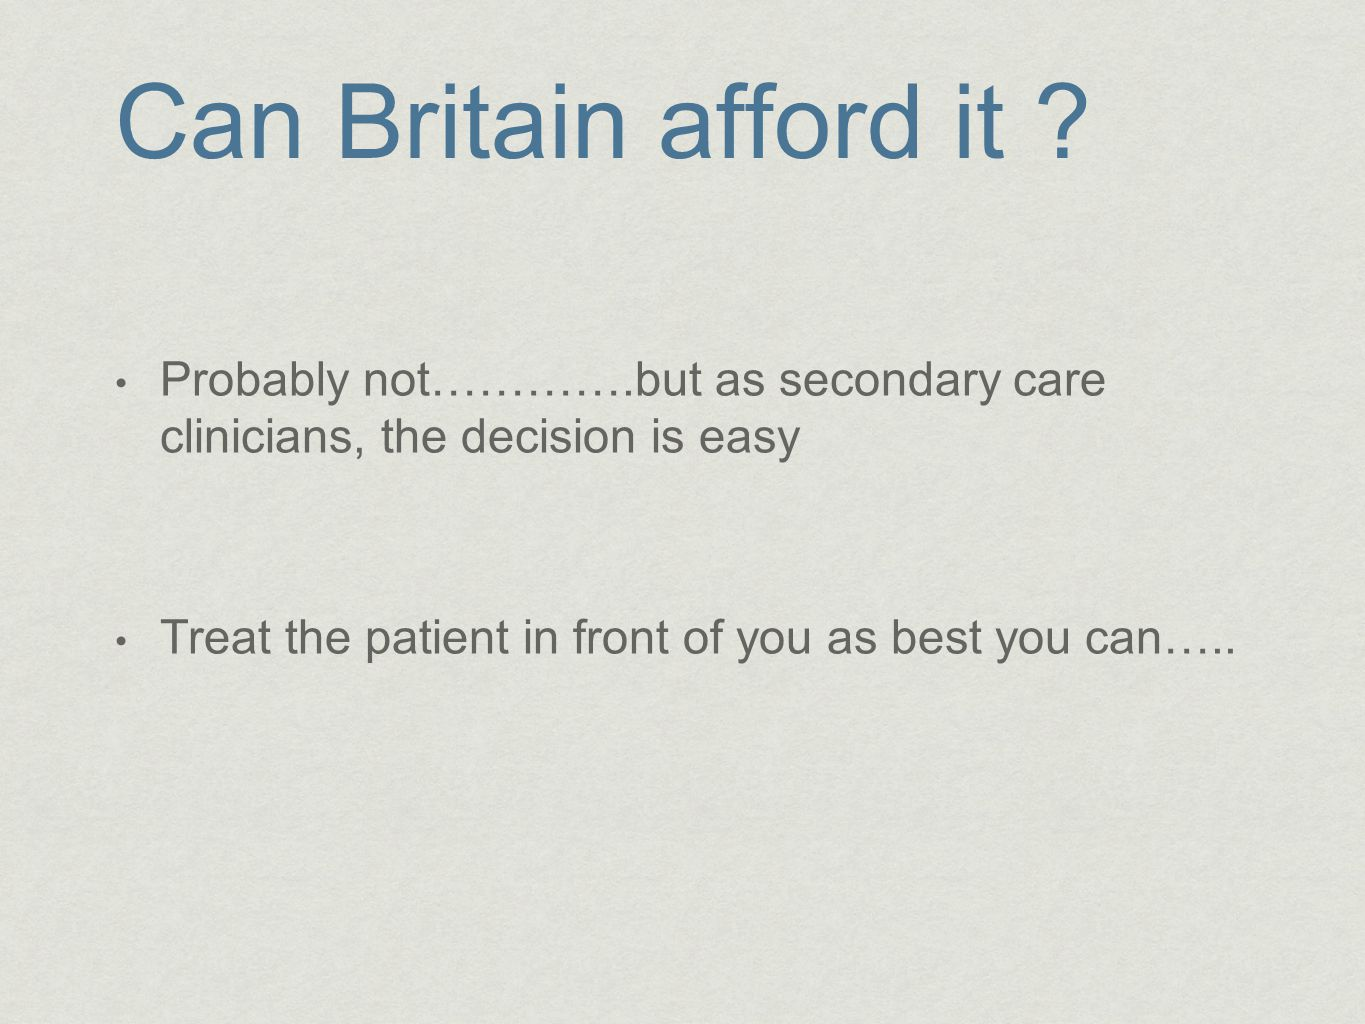 Can Britain afford it Probably not………….but as secondary care clinicians, the decision is easy.